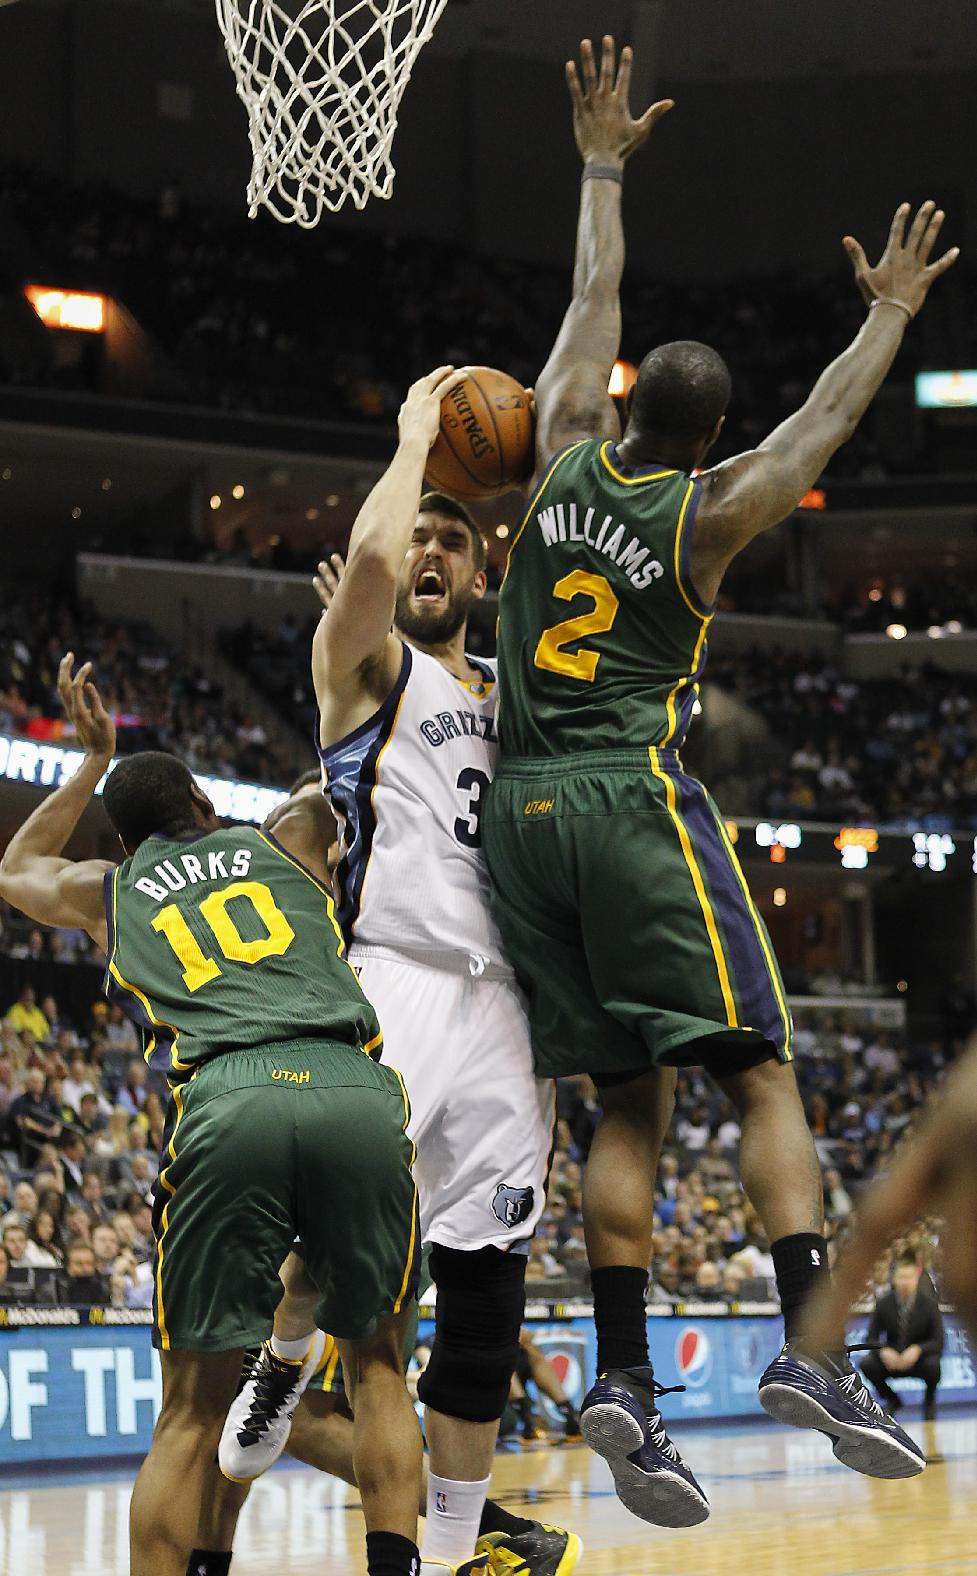 Memphis Grizzlies center Marc Gasol (33), of Spain, goes to the basket against Utah Jazz guard Alec Burks (10) and forward Marvin Williams (2) in the first half of an NBA basketball game on Wednesday, March 19, 2014, in Memphis, Tenn